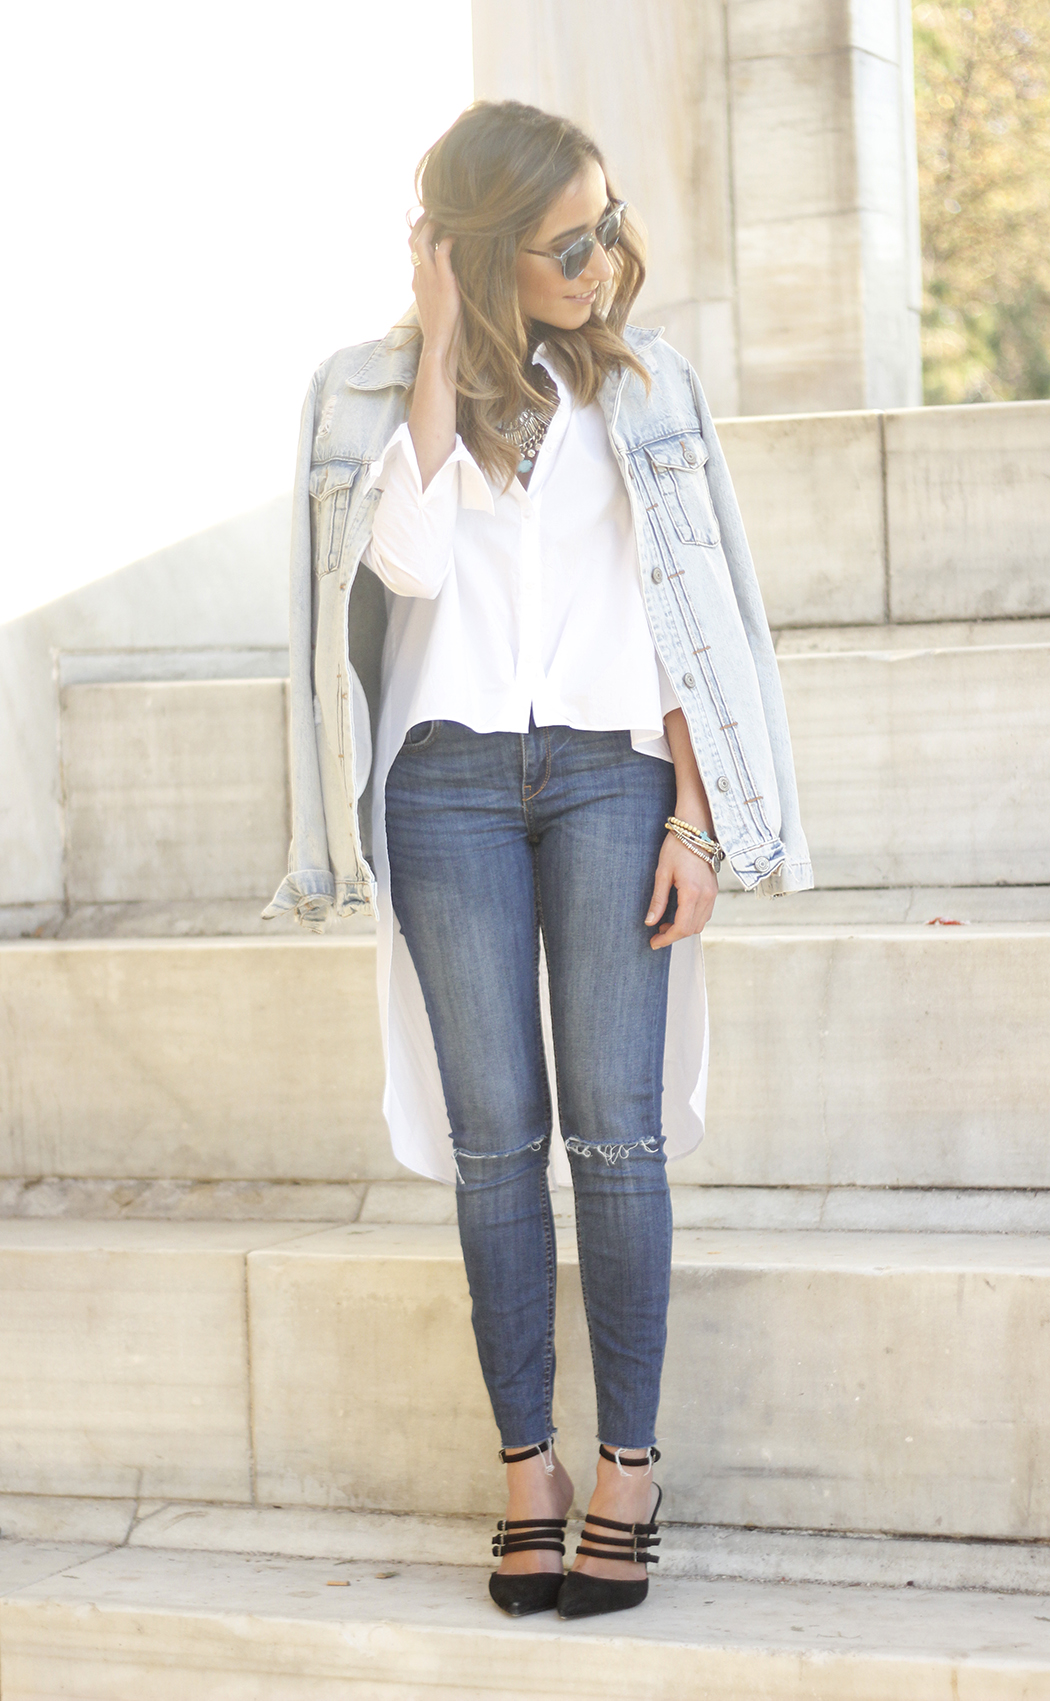 Denim Jacket Jeans White Shirt Black Heels outfit18